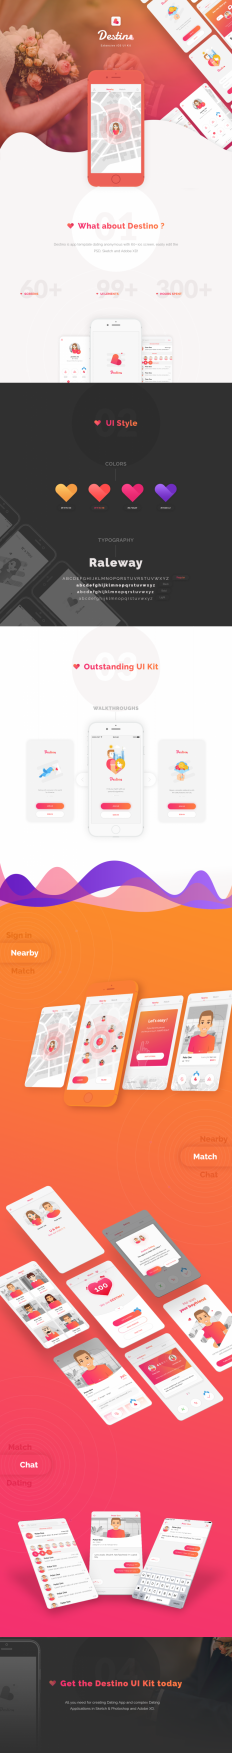 Destino Dating App UI KIT on Inspirationde